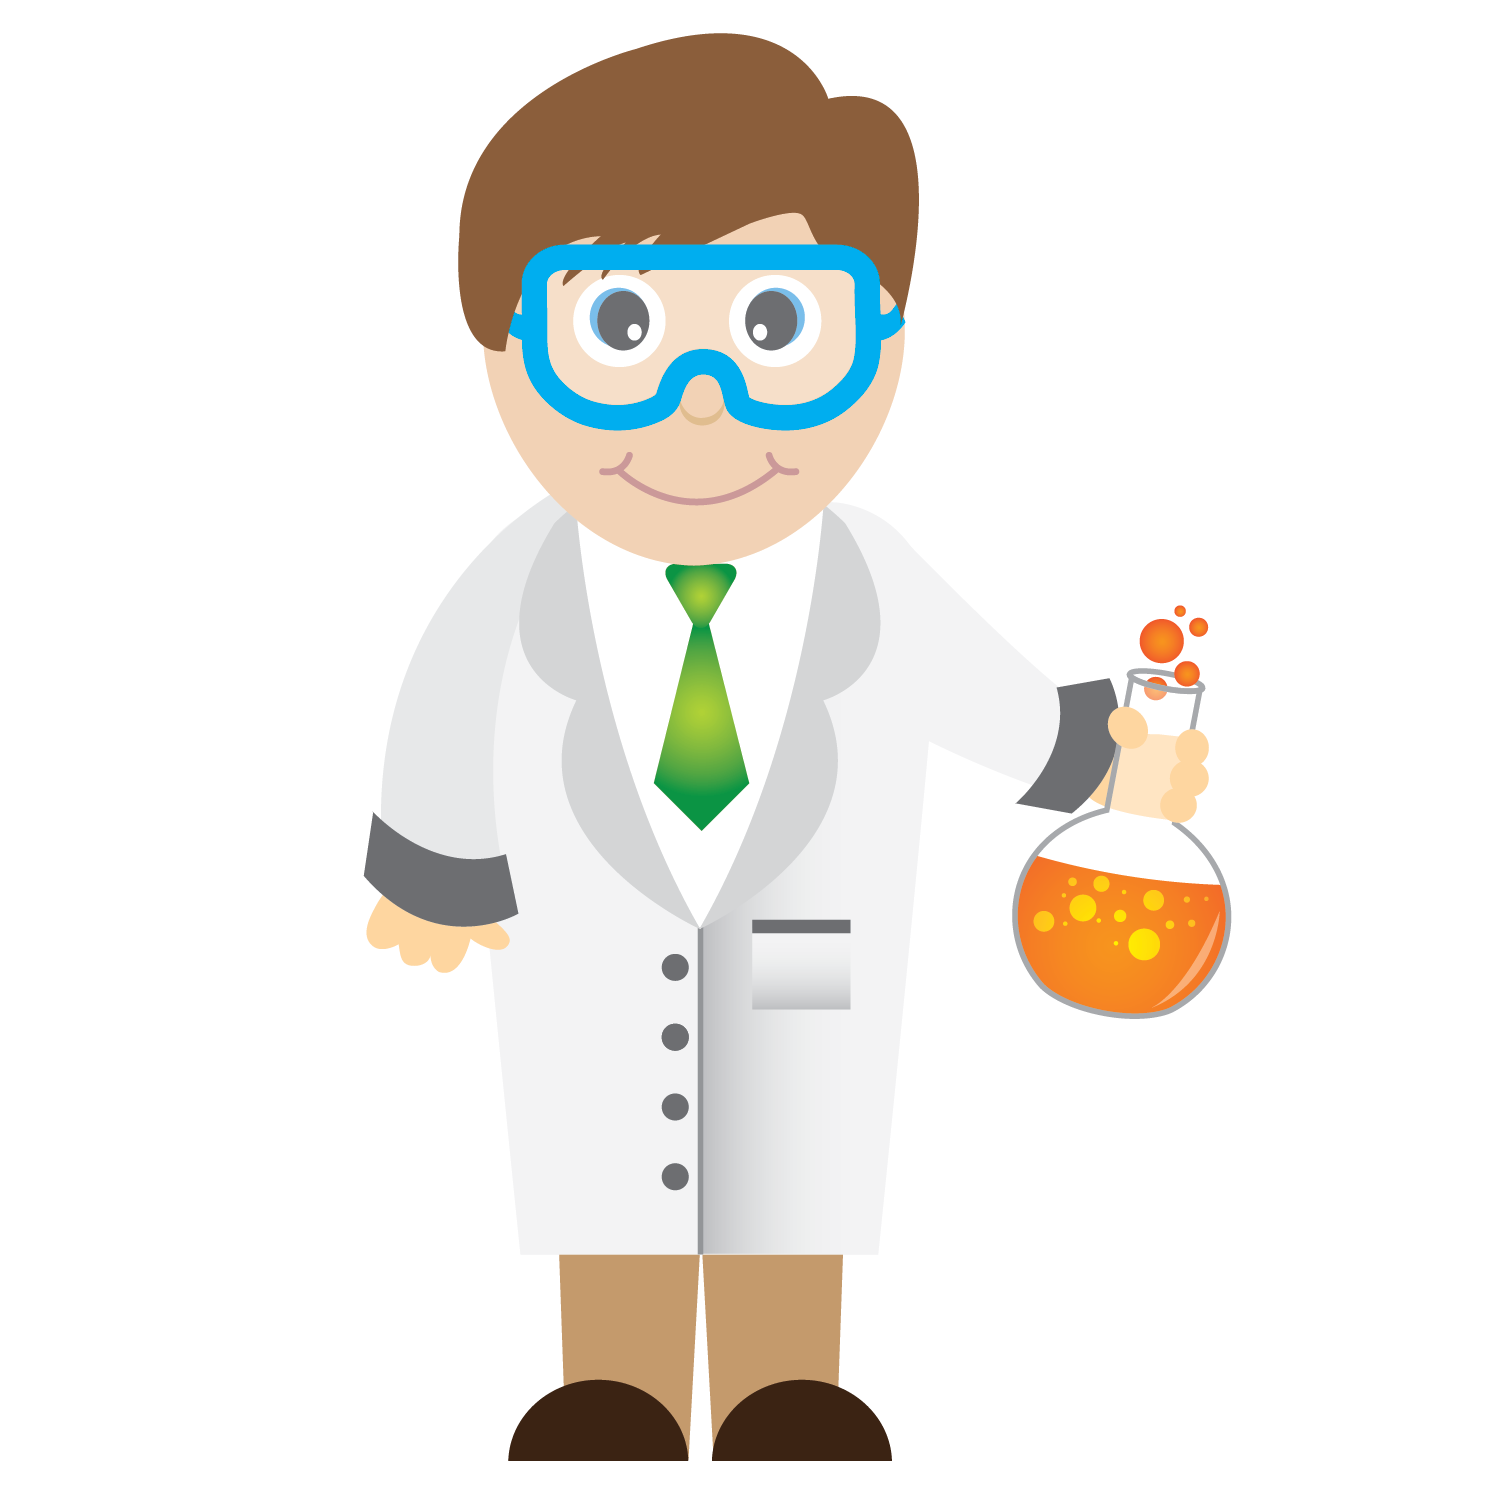 scientist png image purepng free transparent cc0 png image library